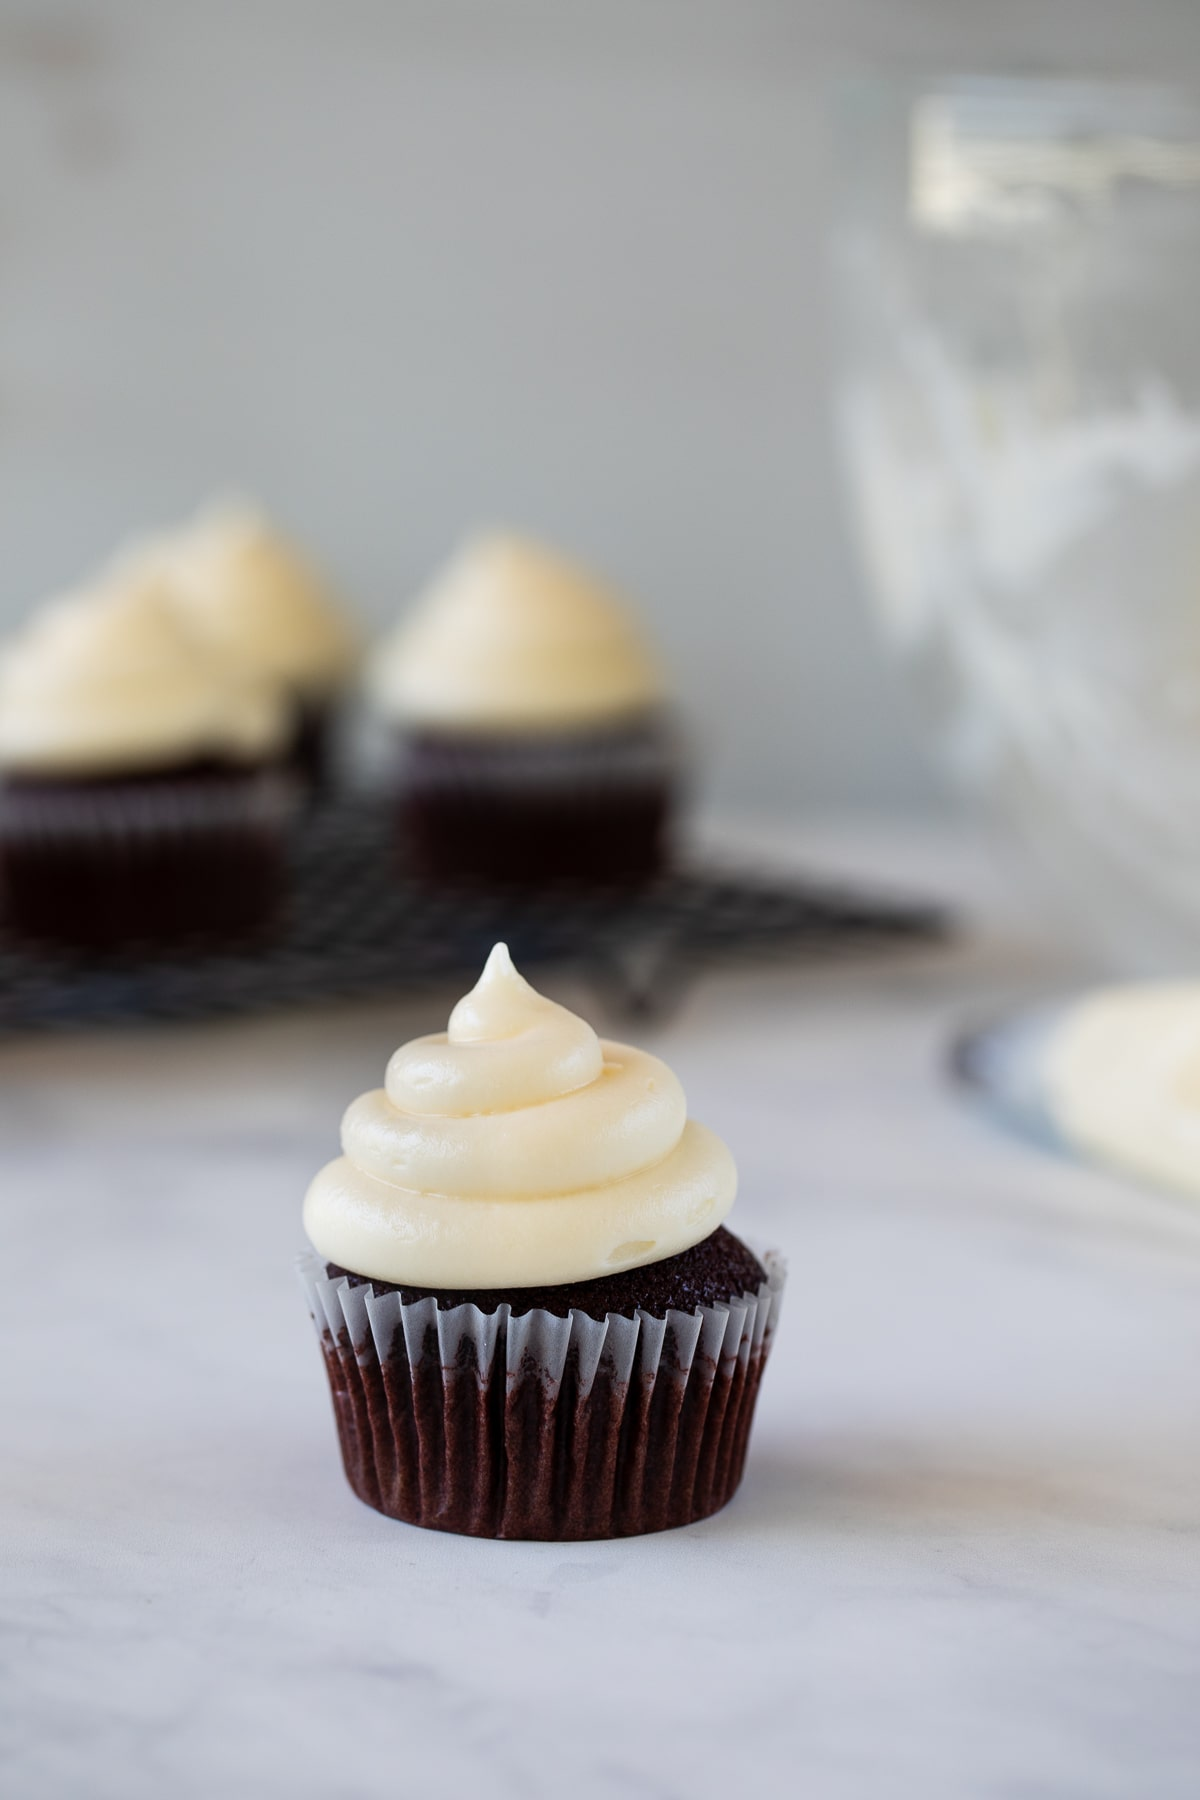 cream cheese frosting piped on cupcake